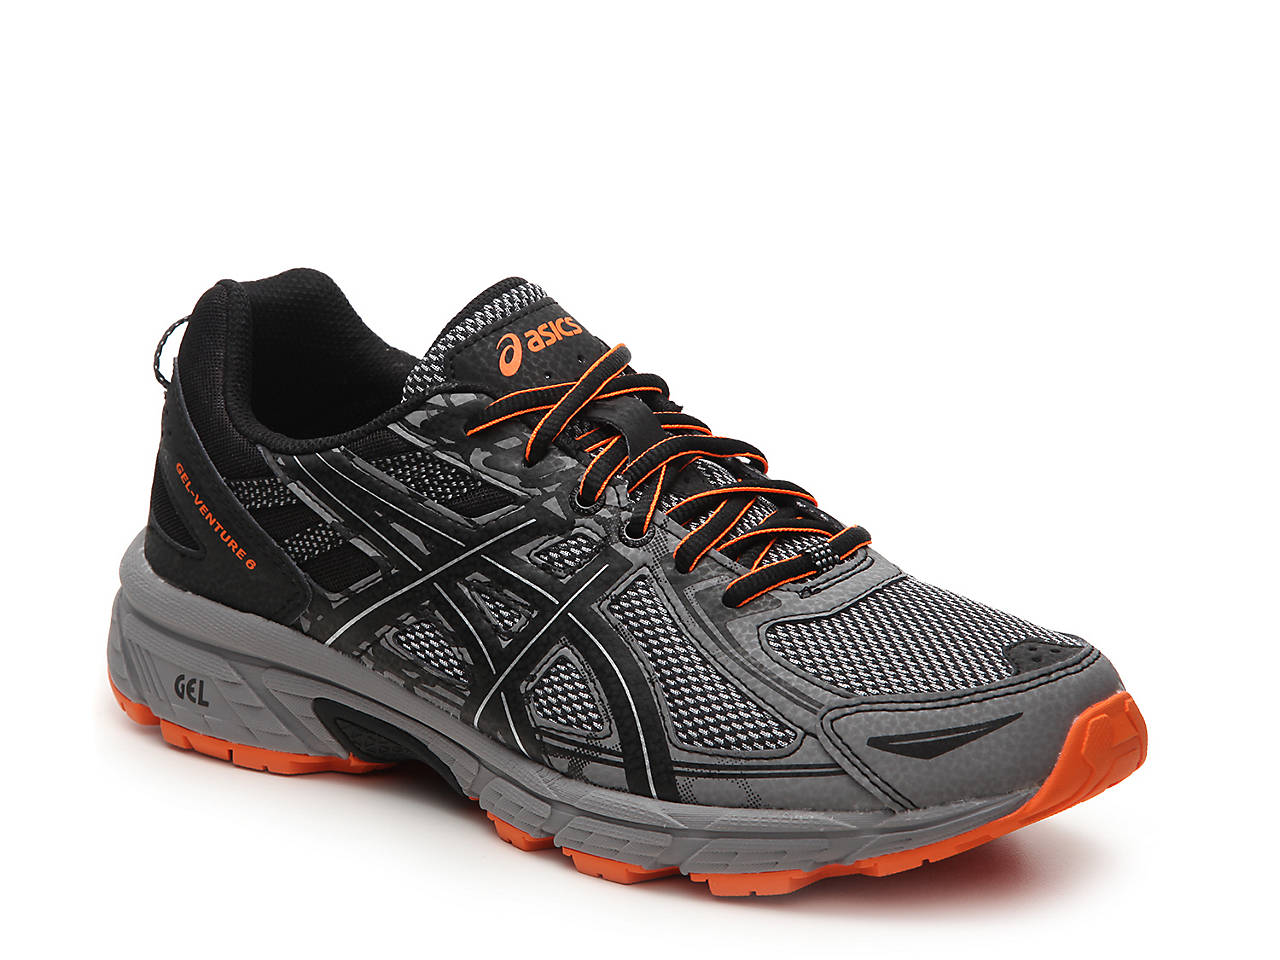 27b96a0ff215 ASICS GEL-Venture 6 Trail Running Shoe - Men's Men's Shoes | DSW